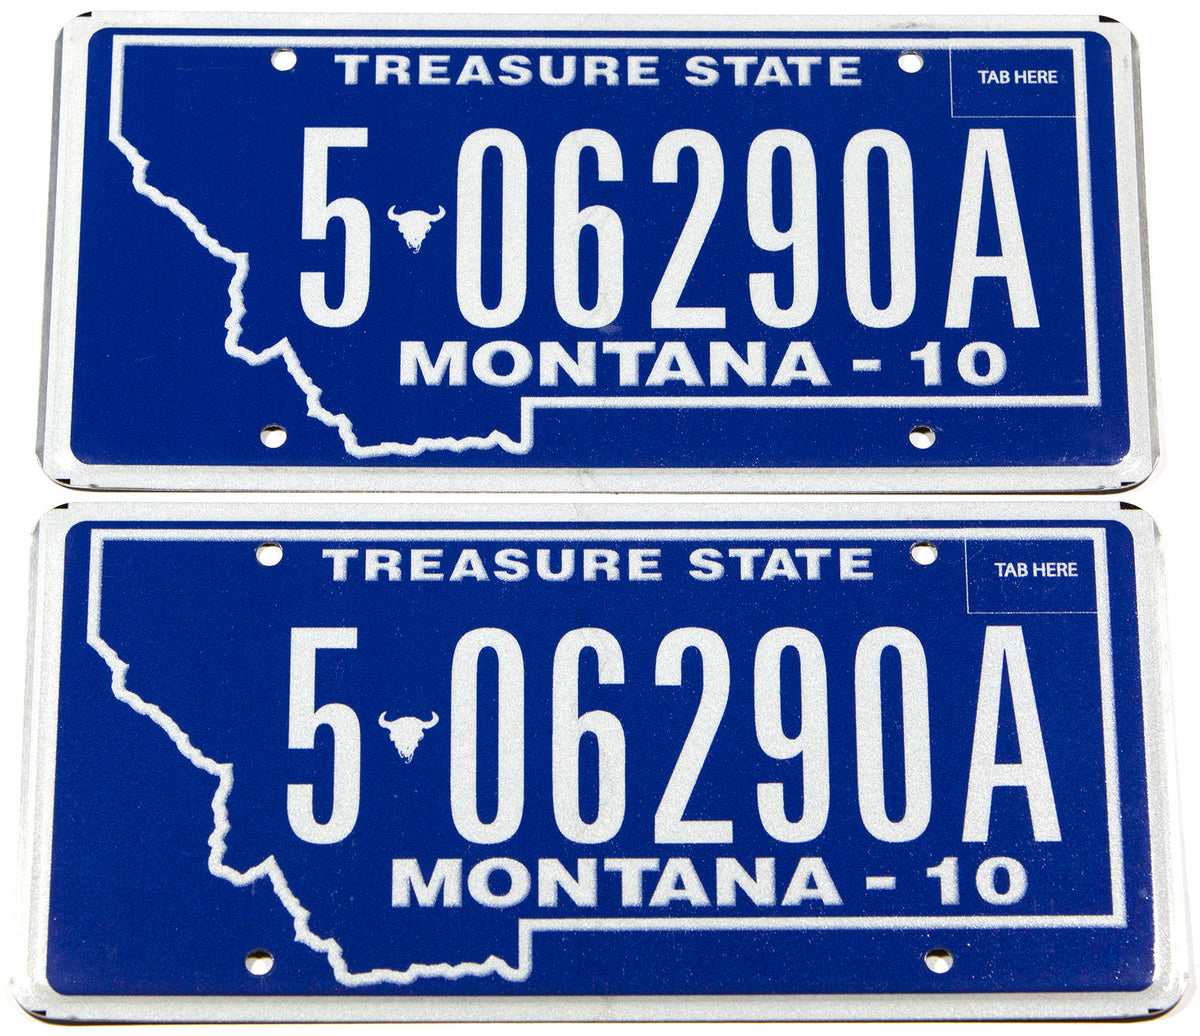 2010 Montana car license plates in NOS near mint condition